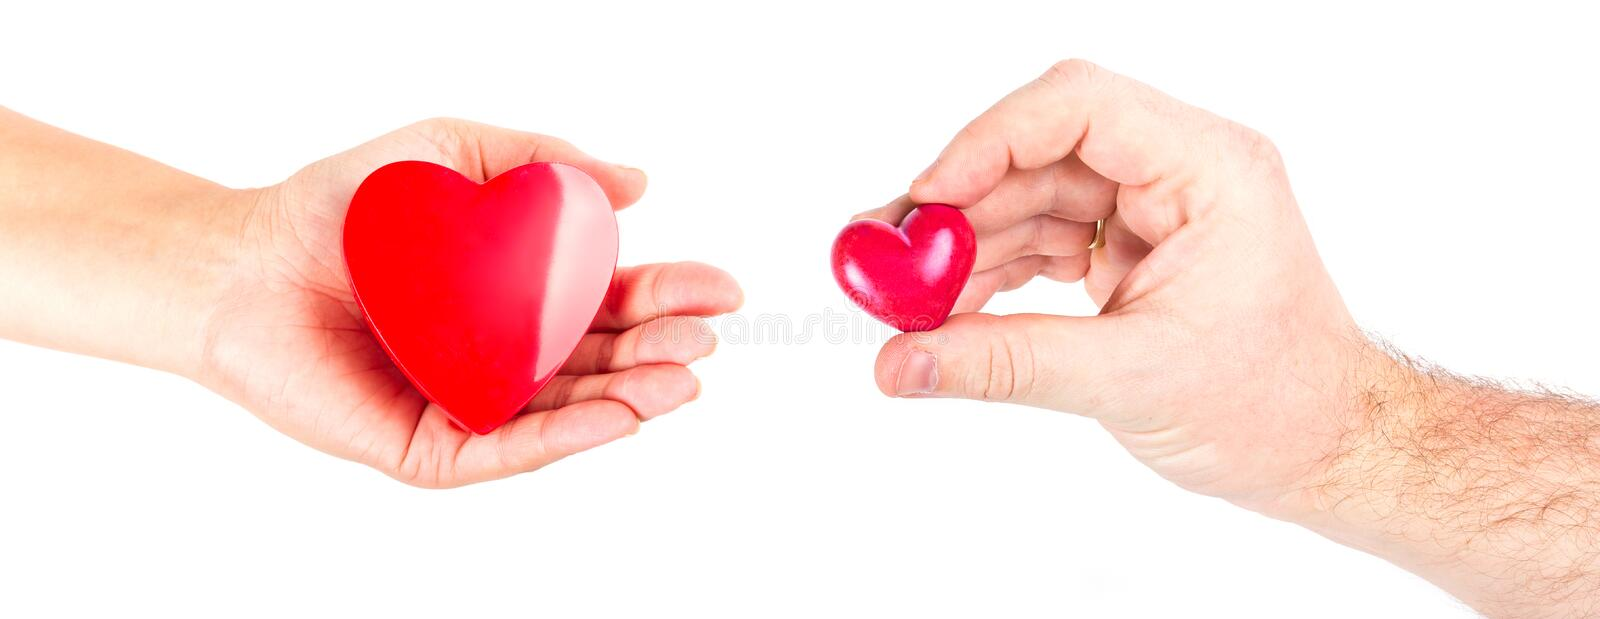 Download Hands Of The Couple With Heart Shapes Stock Image - Image: 29096633